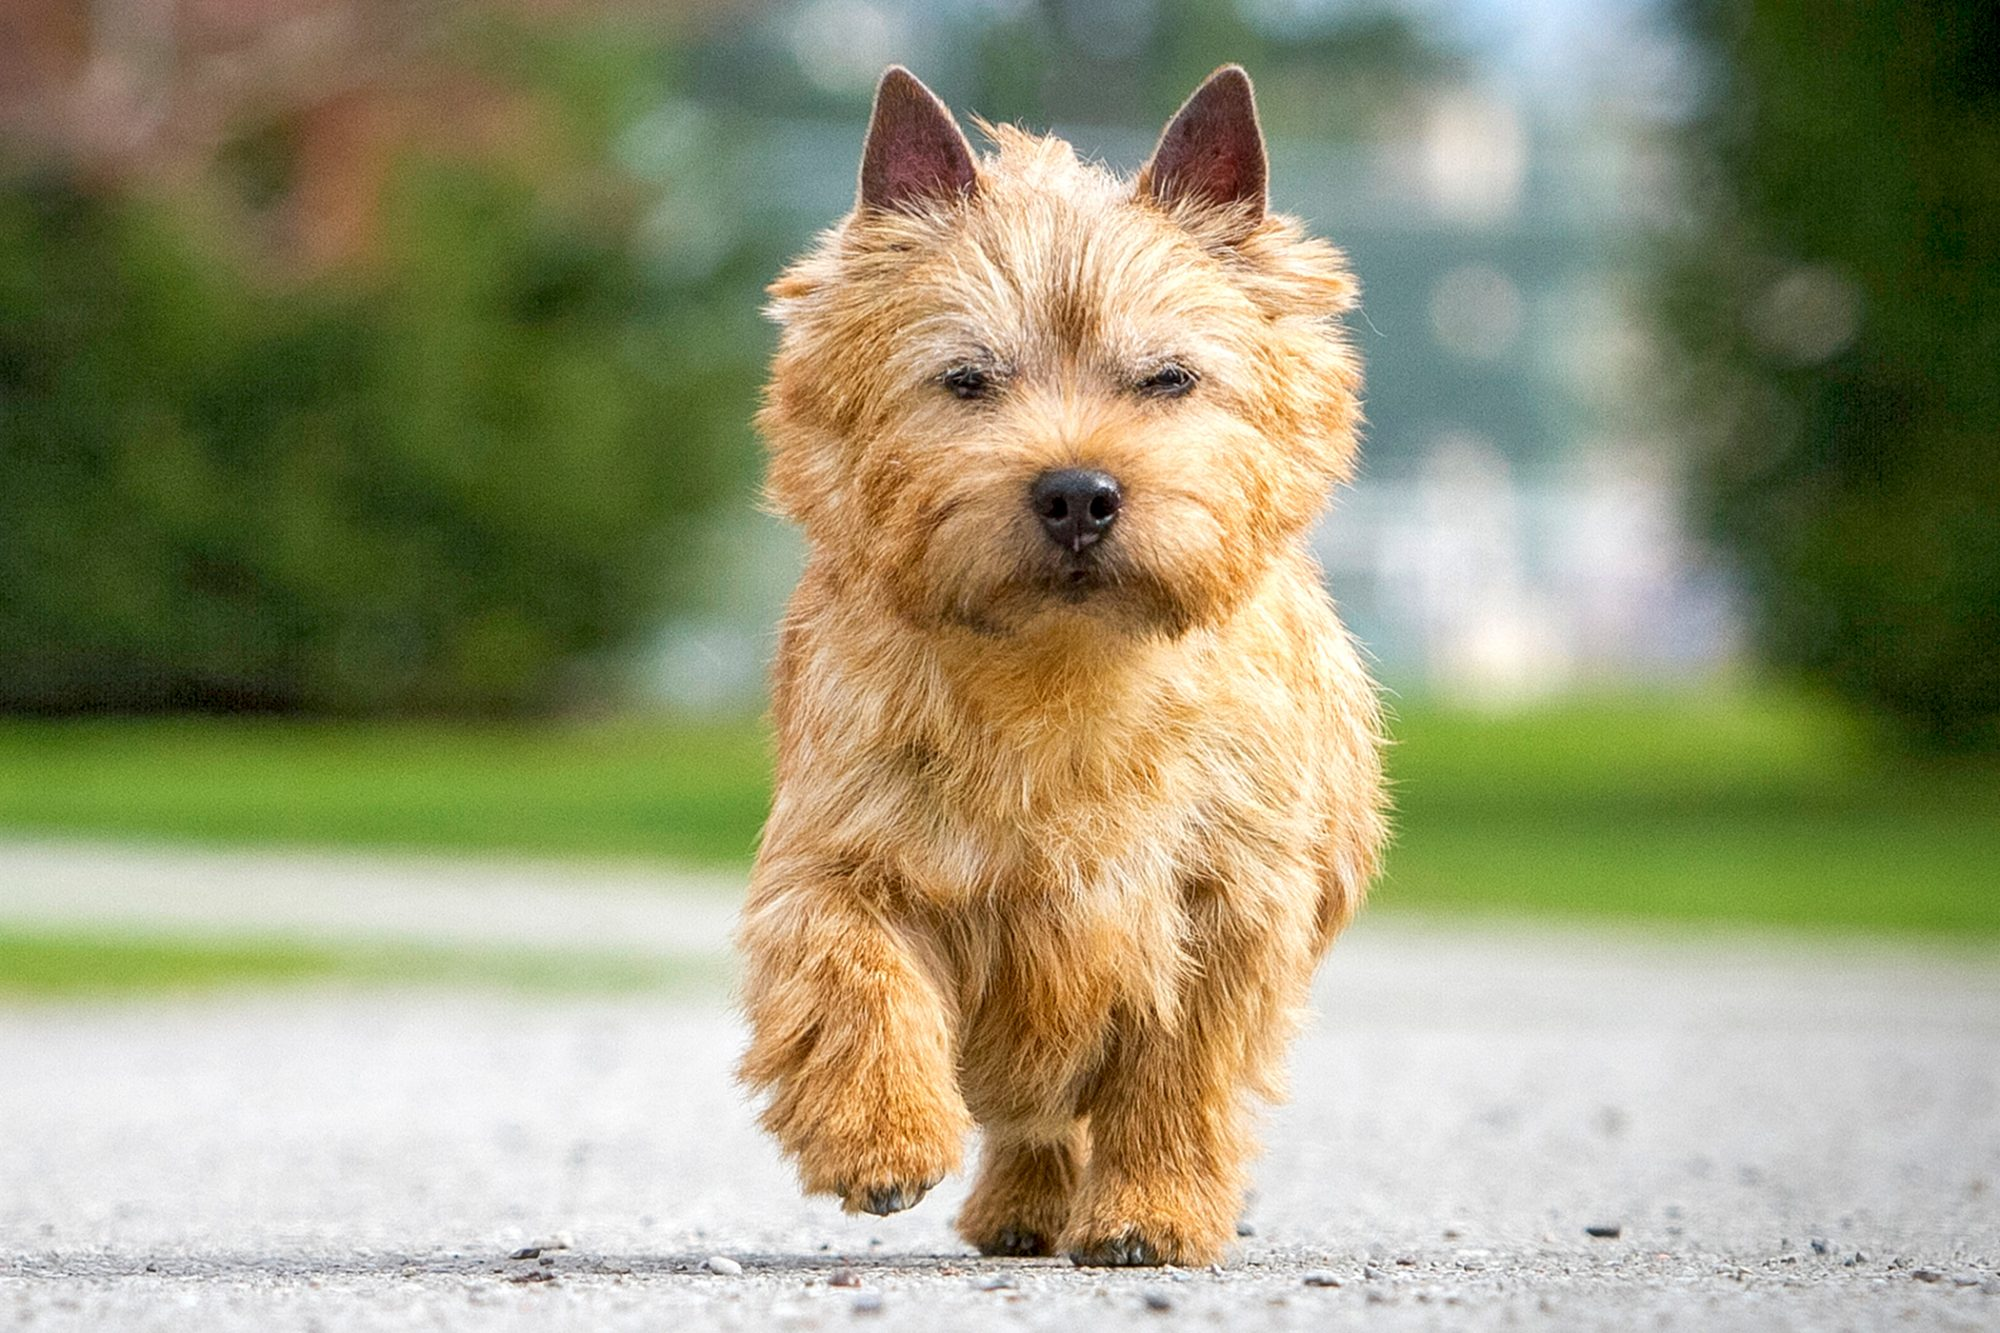 Sandy long-haired norwich terrier walks down paved street toward camera